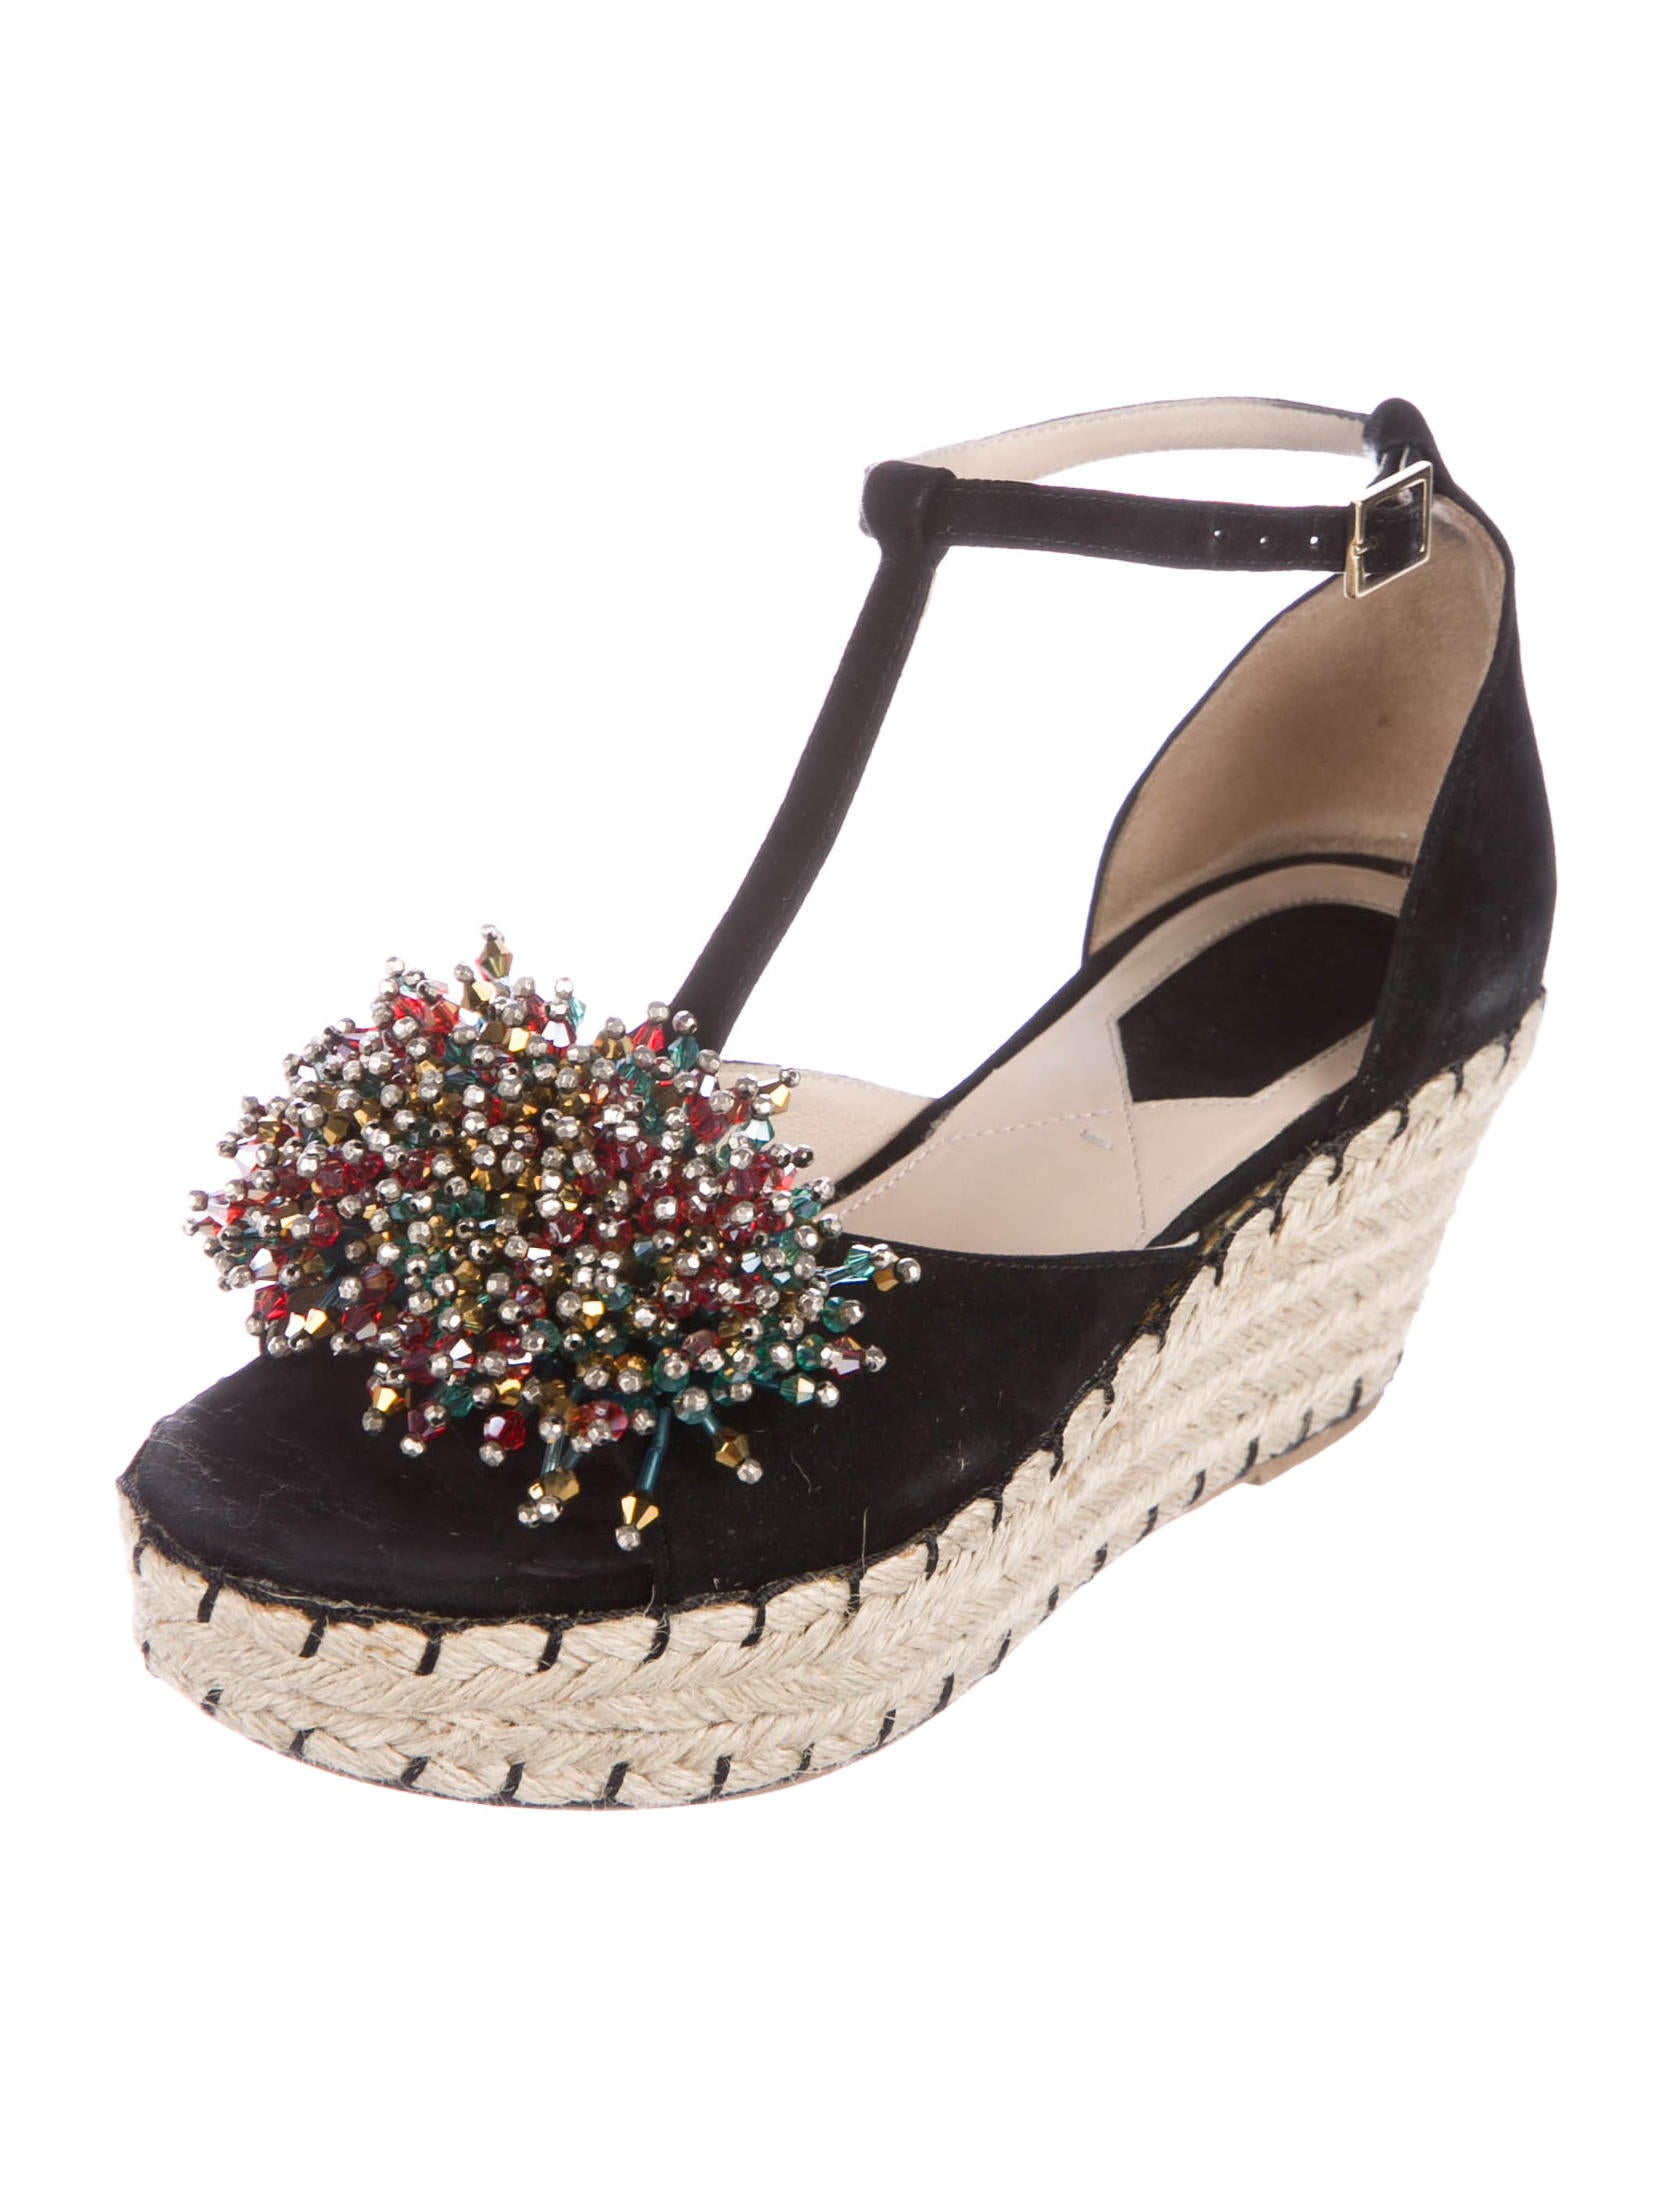 Elie Saab Anemone Embellished Espadrille Wedges for sale cheap price uYoWwOs3m8